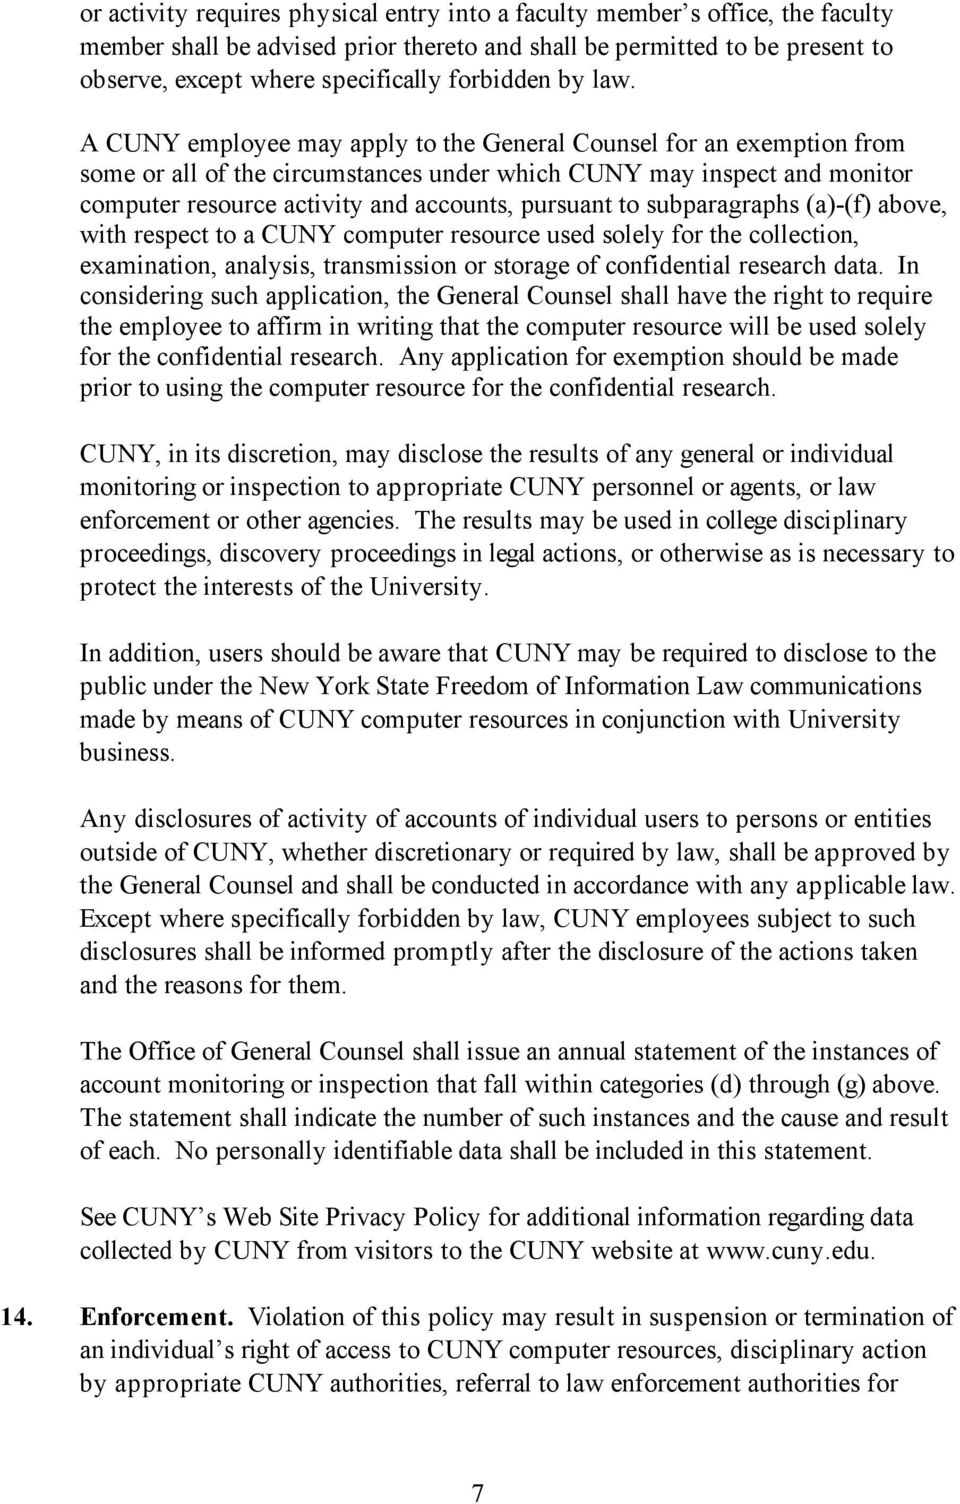 A CUNY employee may apply to the General Counsel for an exemption from some or all of the circumstances under which CUNY may inspect and monitor computer resource activity and accounts, pursuant to